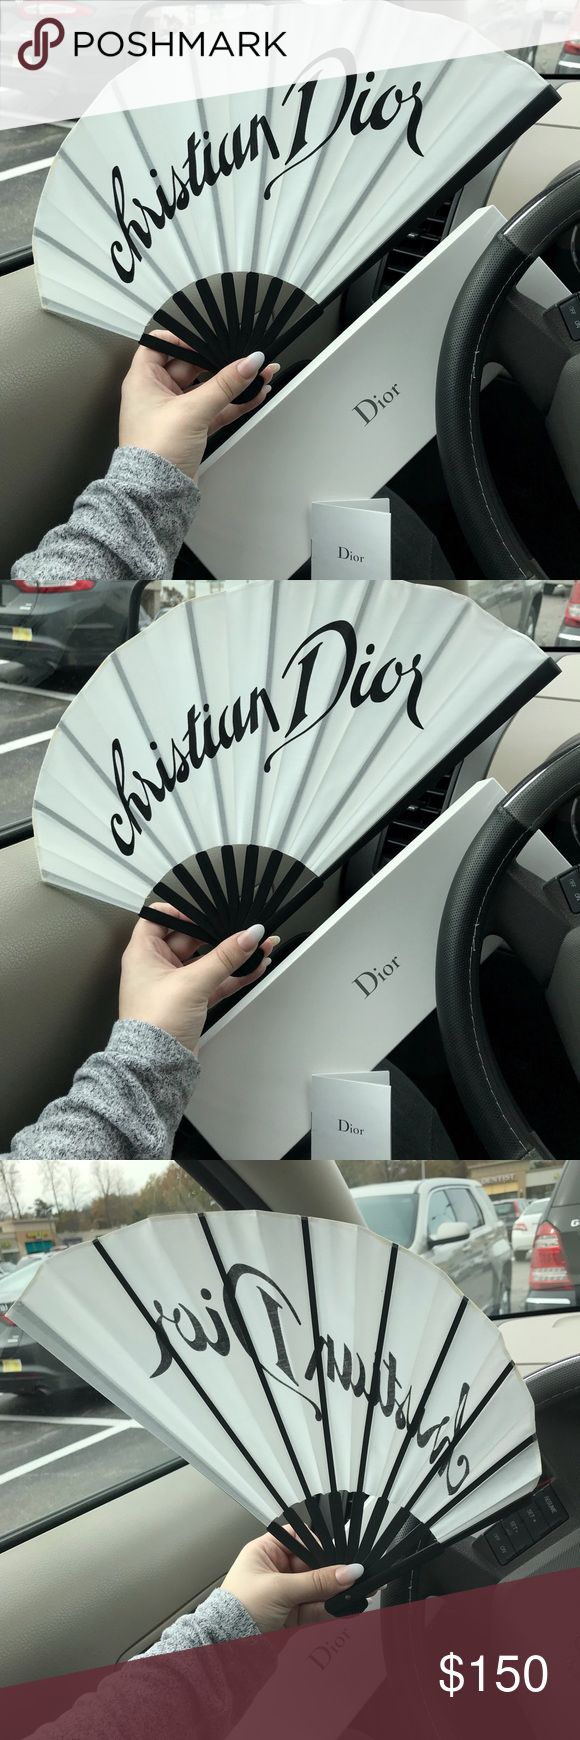 Authentic ULTRA RARE John Galliano Dior Geisha Fan Authentic ULTRA RARE John Galliano for Christian Dior Parfums Japanese Geisha Fan. Was originally given out to High End VIP clients as a gift when announcing their new perfume. Folds down - gorgeous to keep in your bag for summer or even as a collectible or decorative piece. Comes in original box with tags. Message for further details photos or offers. Dior Accessories